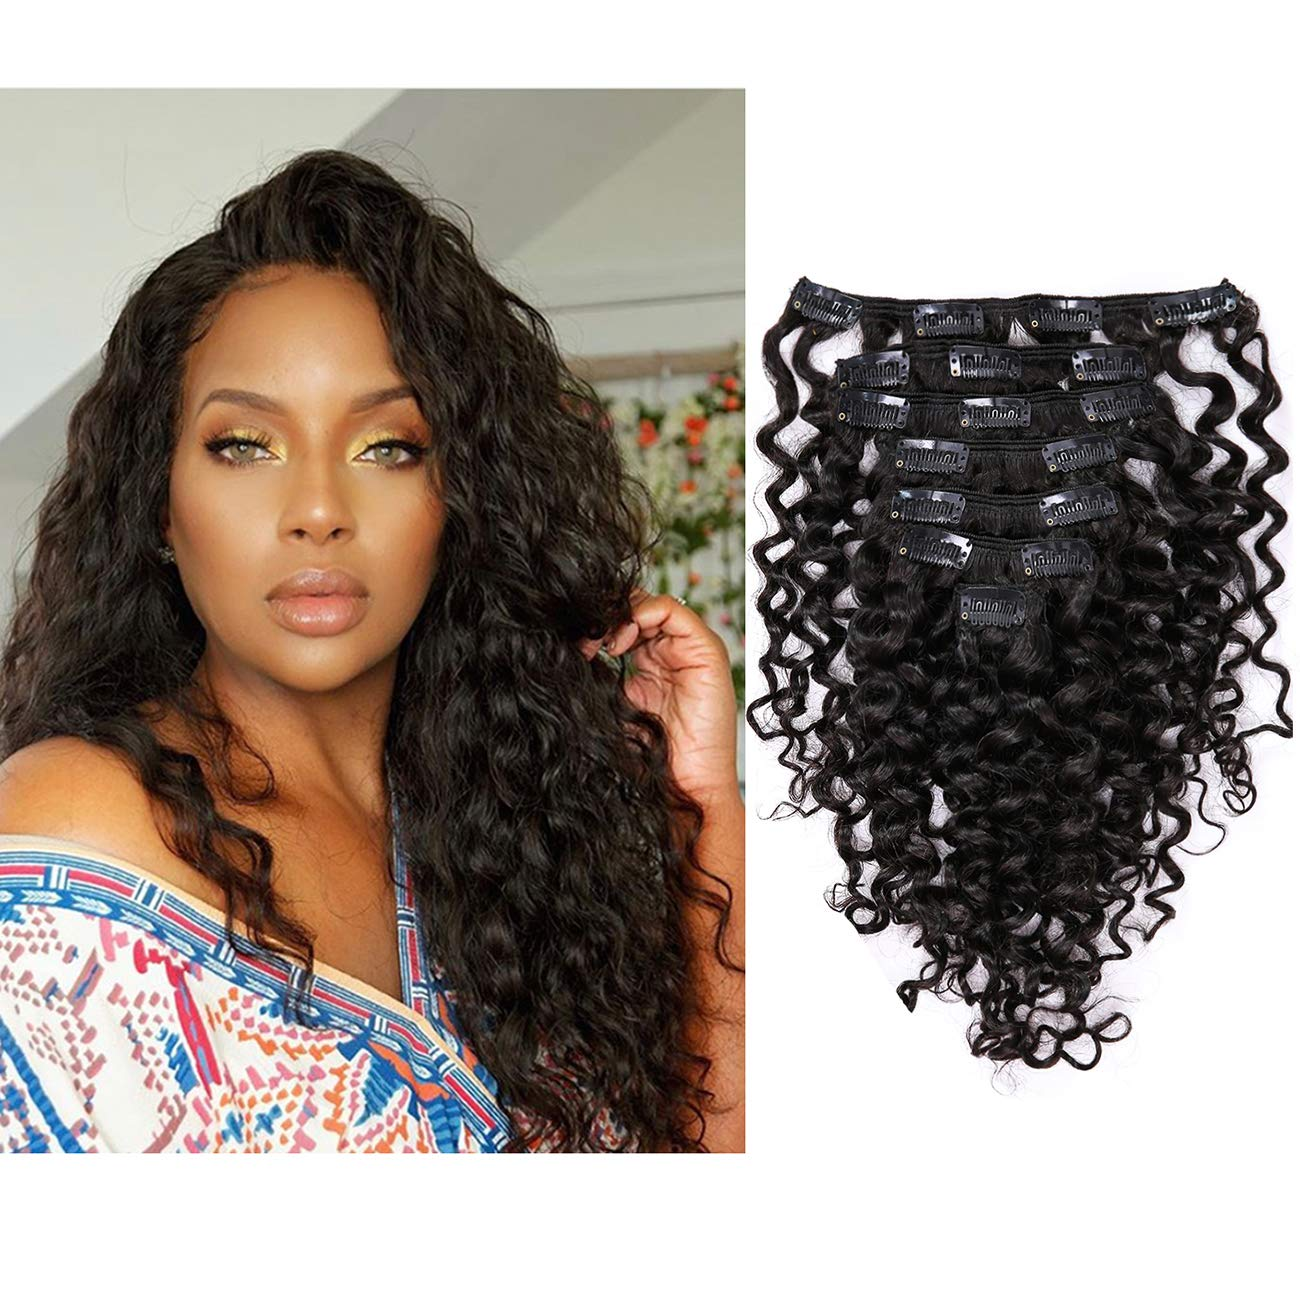 Water Wave Big Curly Clip in Remy Human Hair Extensions Real Thick Double Weft 3A 3B Brazilian Virgin Hair 9A Kinky Style Natural Color Clip-ons For Black Women 7 Pieces 120g with 17Clips 20 inch